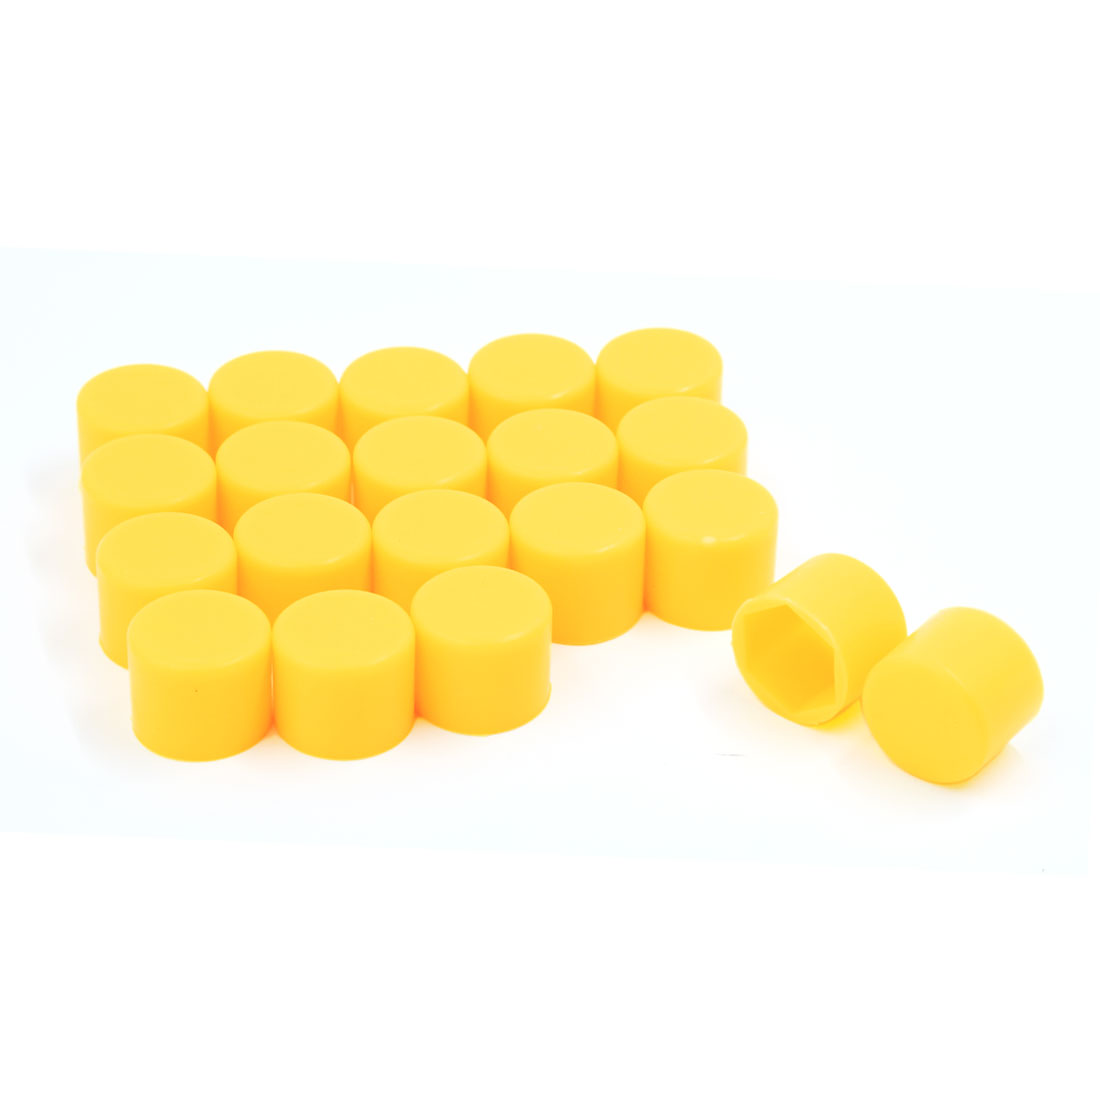 20PCS 19mm Hex Protective Cap Tyre Wheel Lug Nut Bolt Dust Covers Yellow for Car